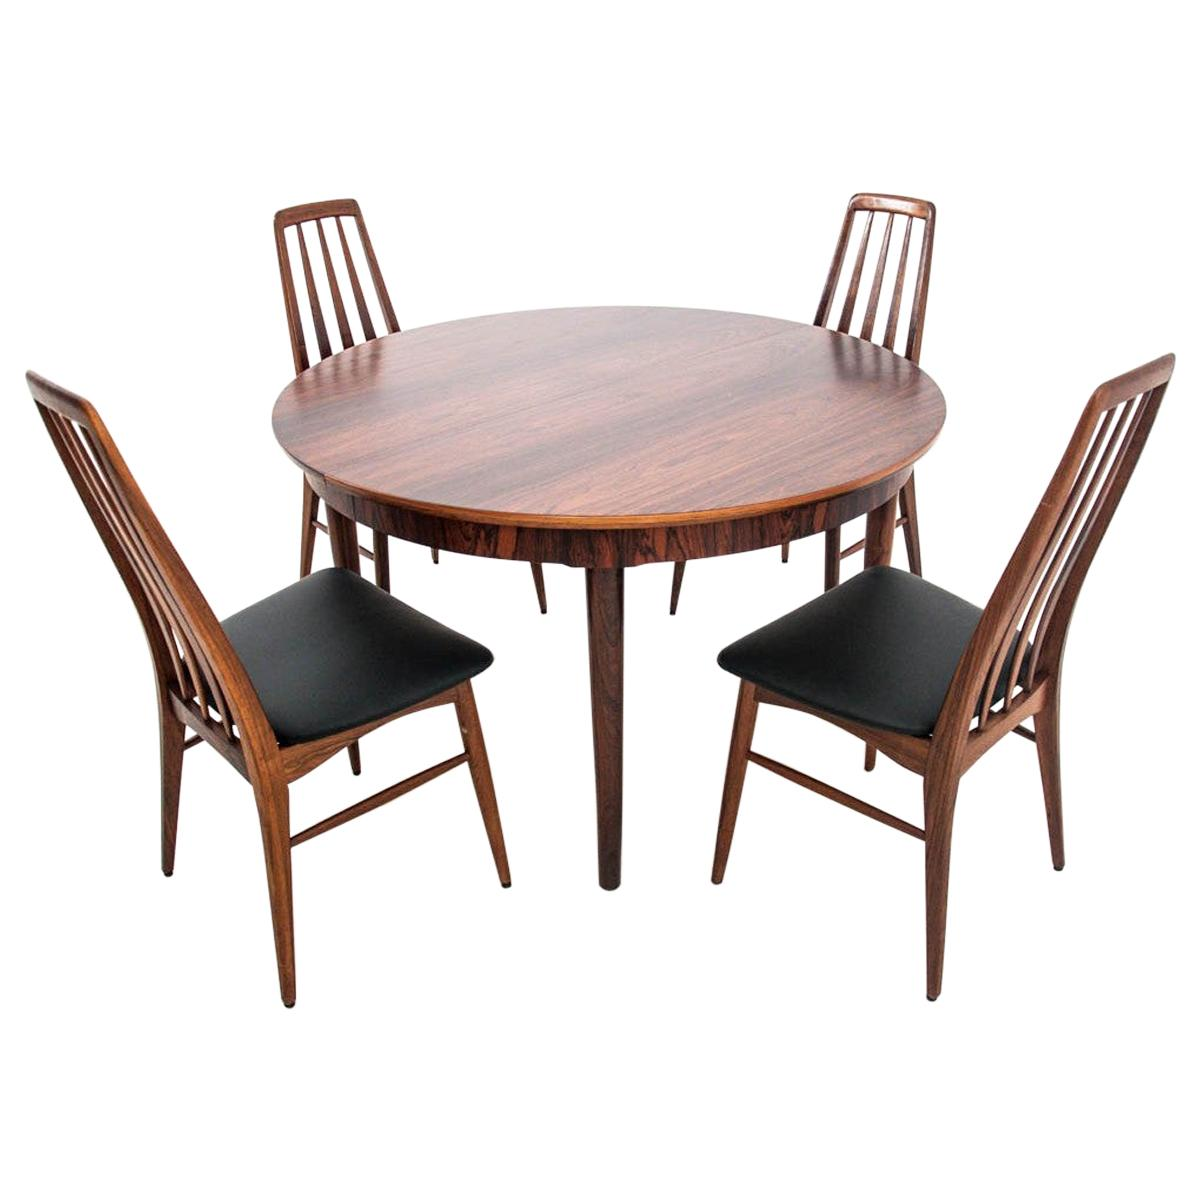 Dining Set Table and 4 Chairs, by Niels Koefoed Danish Design, 1960s